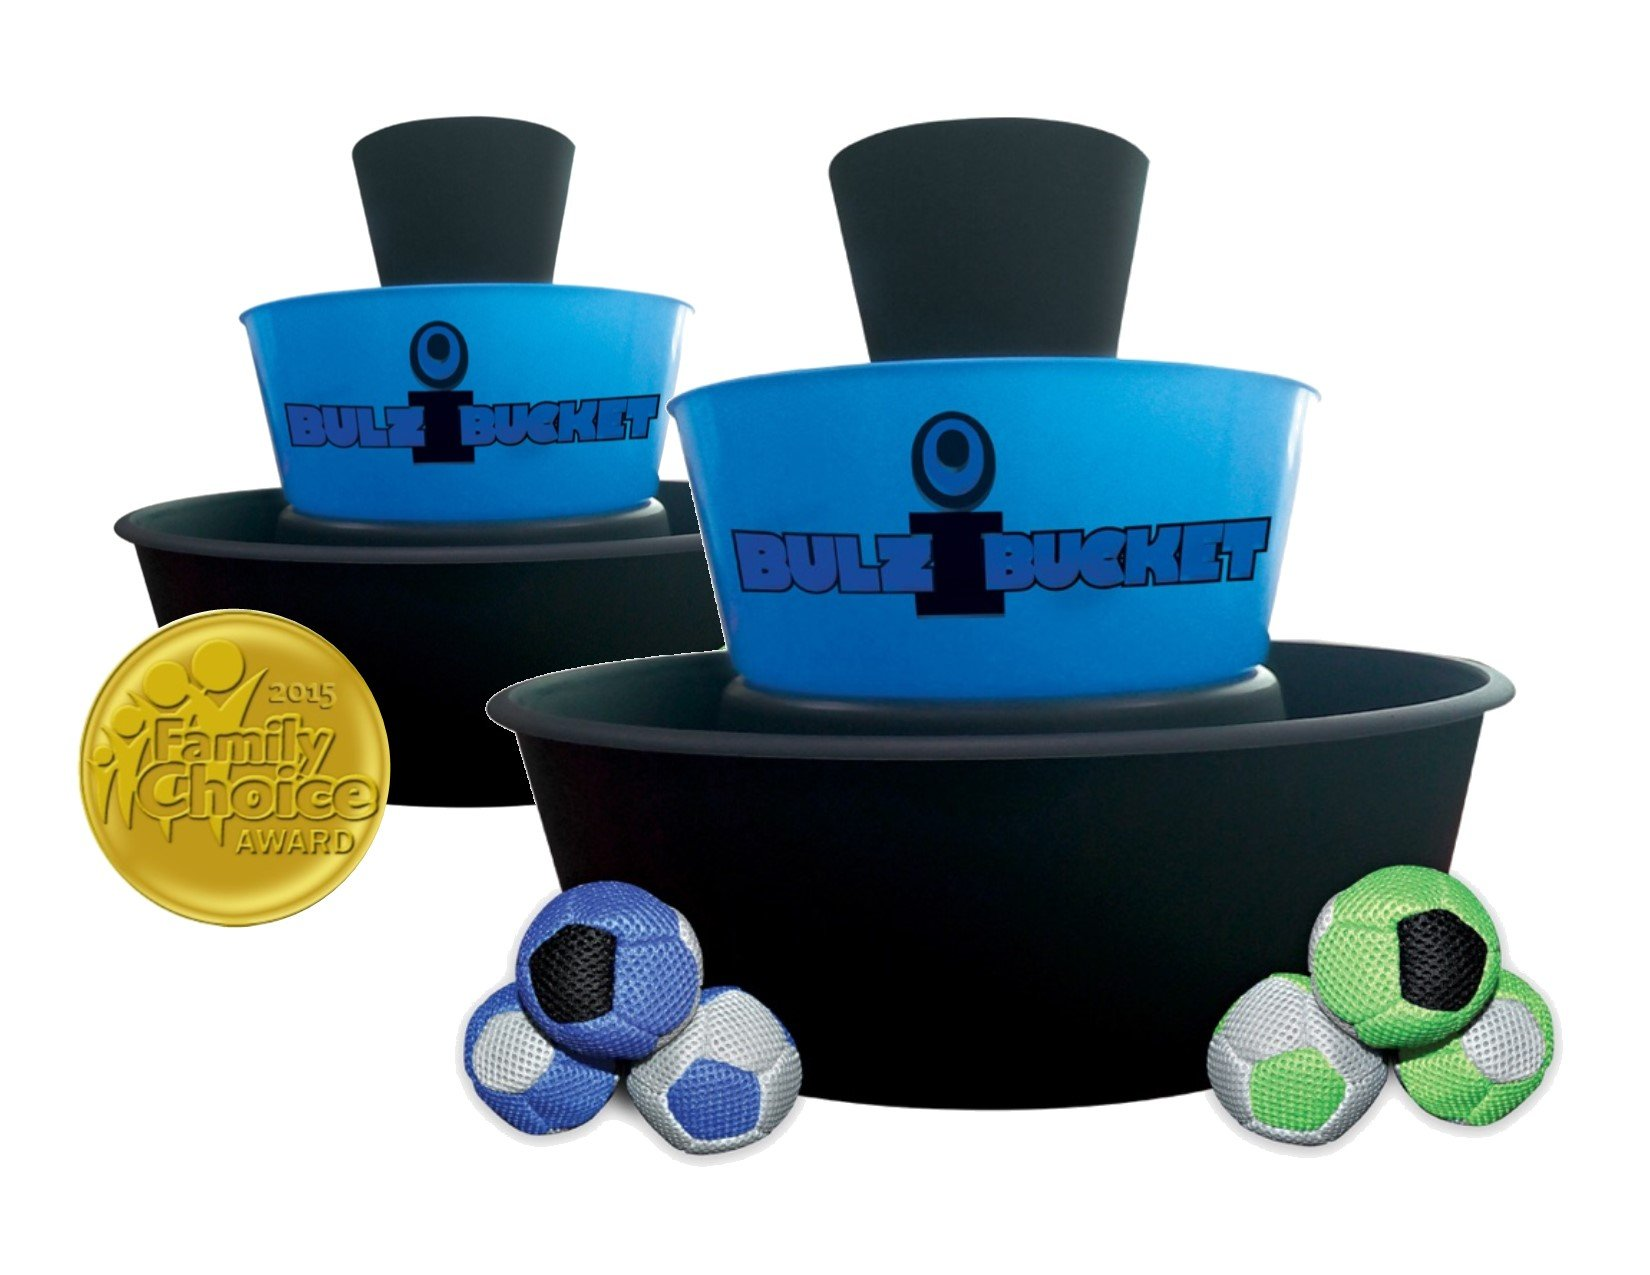 BULZiBUCKET Blue - Next Generation Cornhole - Indoor/Outdoor / Pool Game !!!